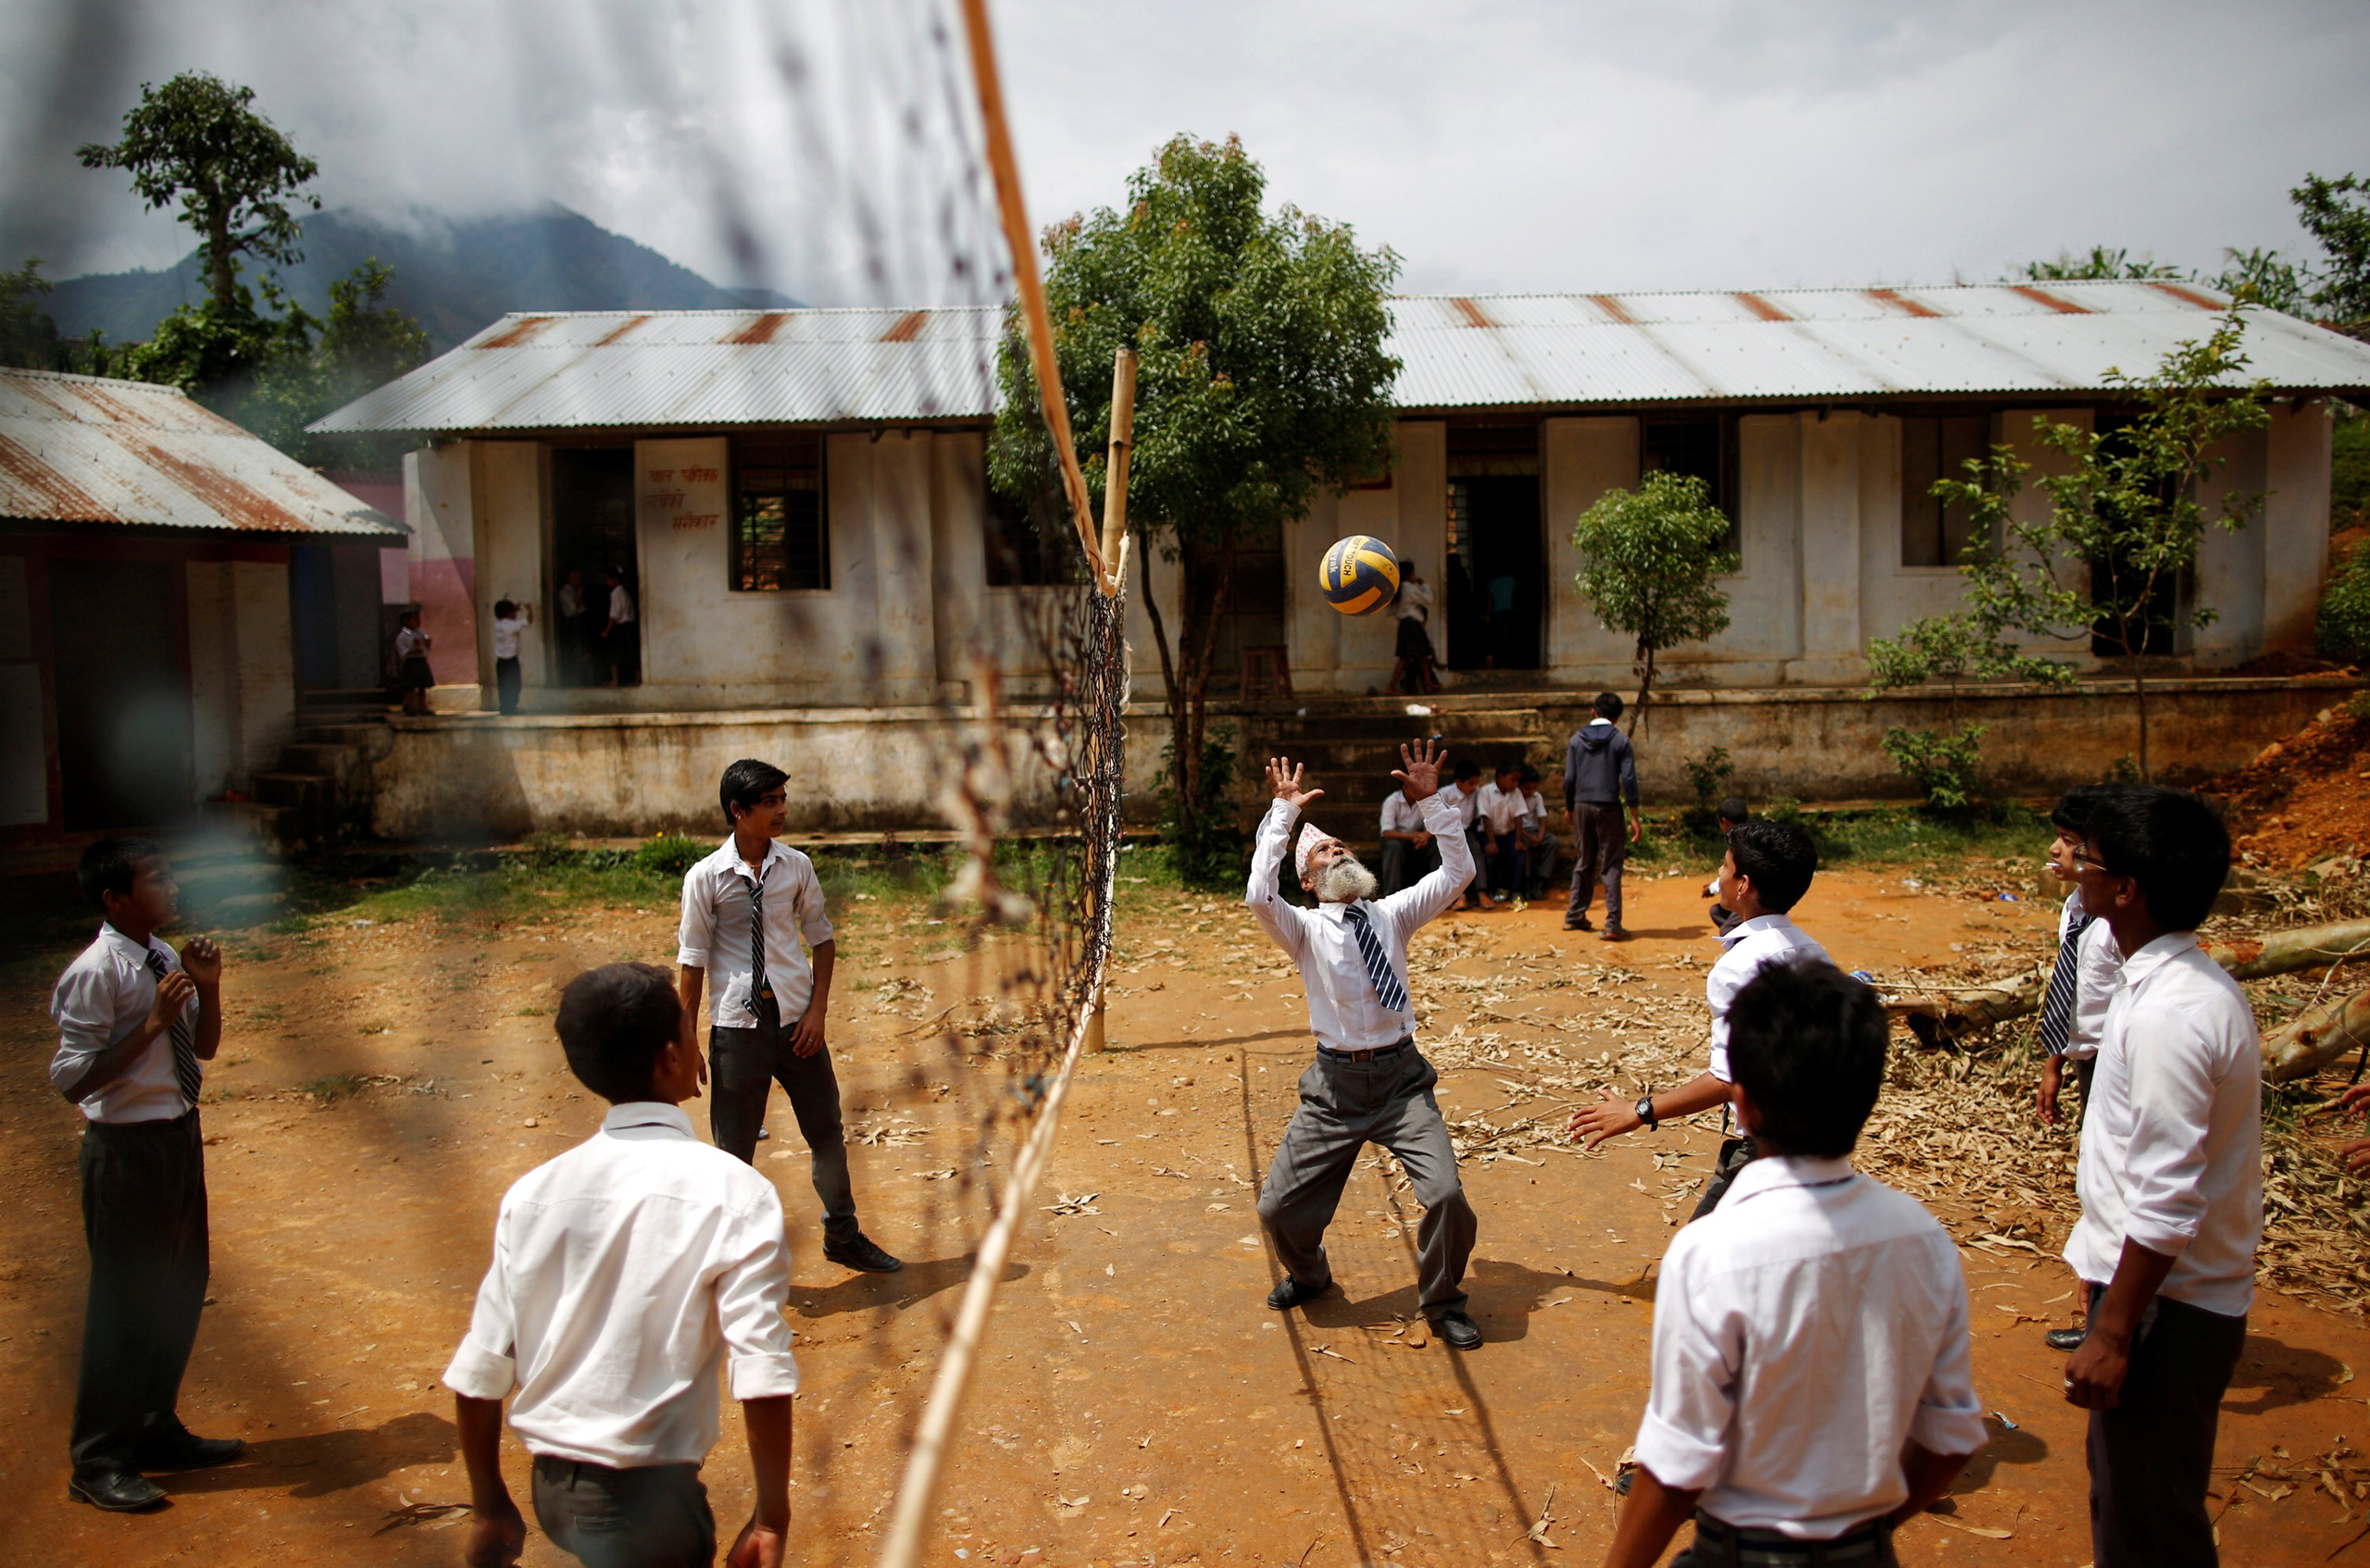 Durga Kami plays volleyball with schoolmates during a break in Syangja, Nepal, on June 5, 2016.